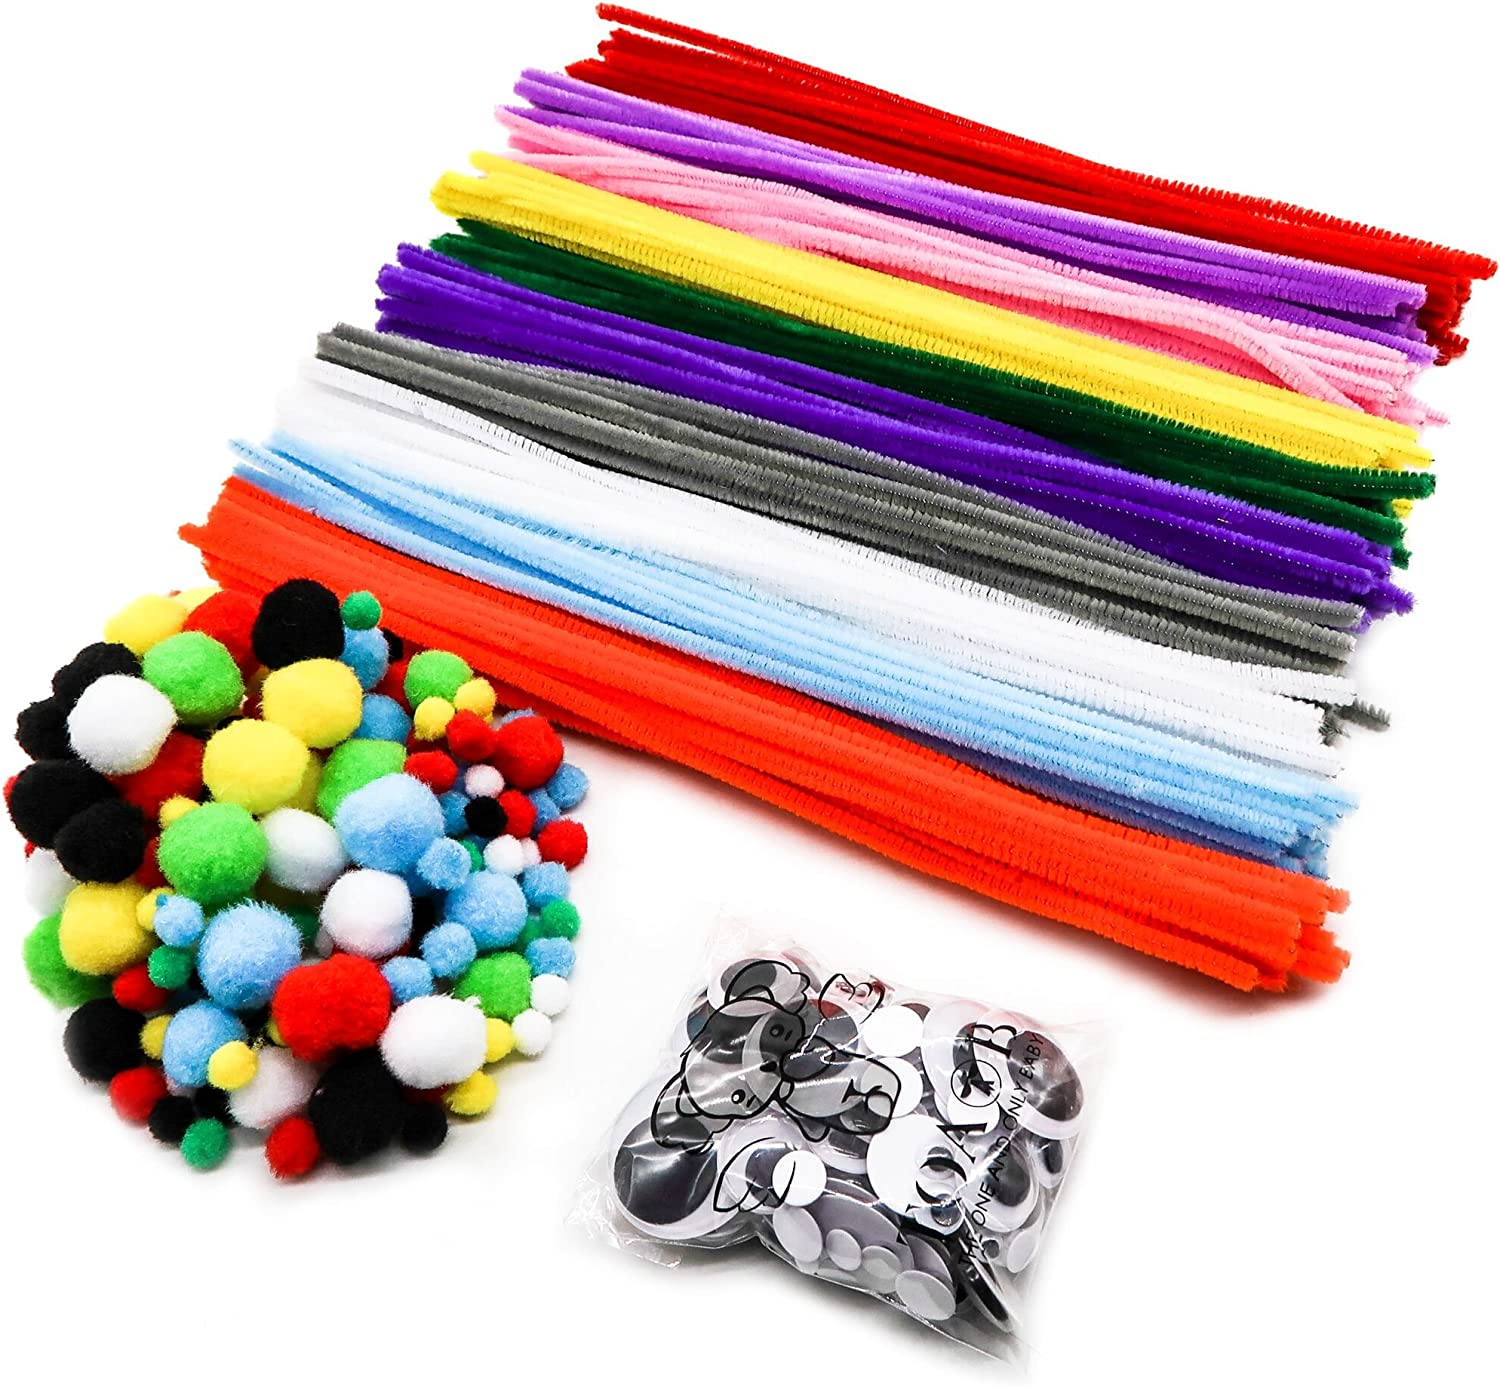 500Pcs Pipe Cleaners Craft Set,Including 100 Pcs Chenille Stems 250 Pcs Pom Poms Craft 150 Pcs Wiggle Googly Eyes Self Adhesive,Assorted Colors and Assorted Sizes for DIY Art Craft